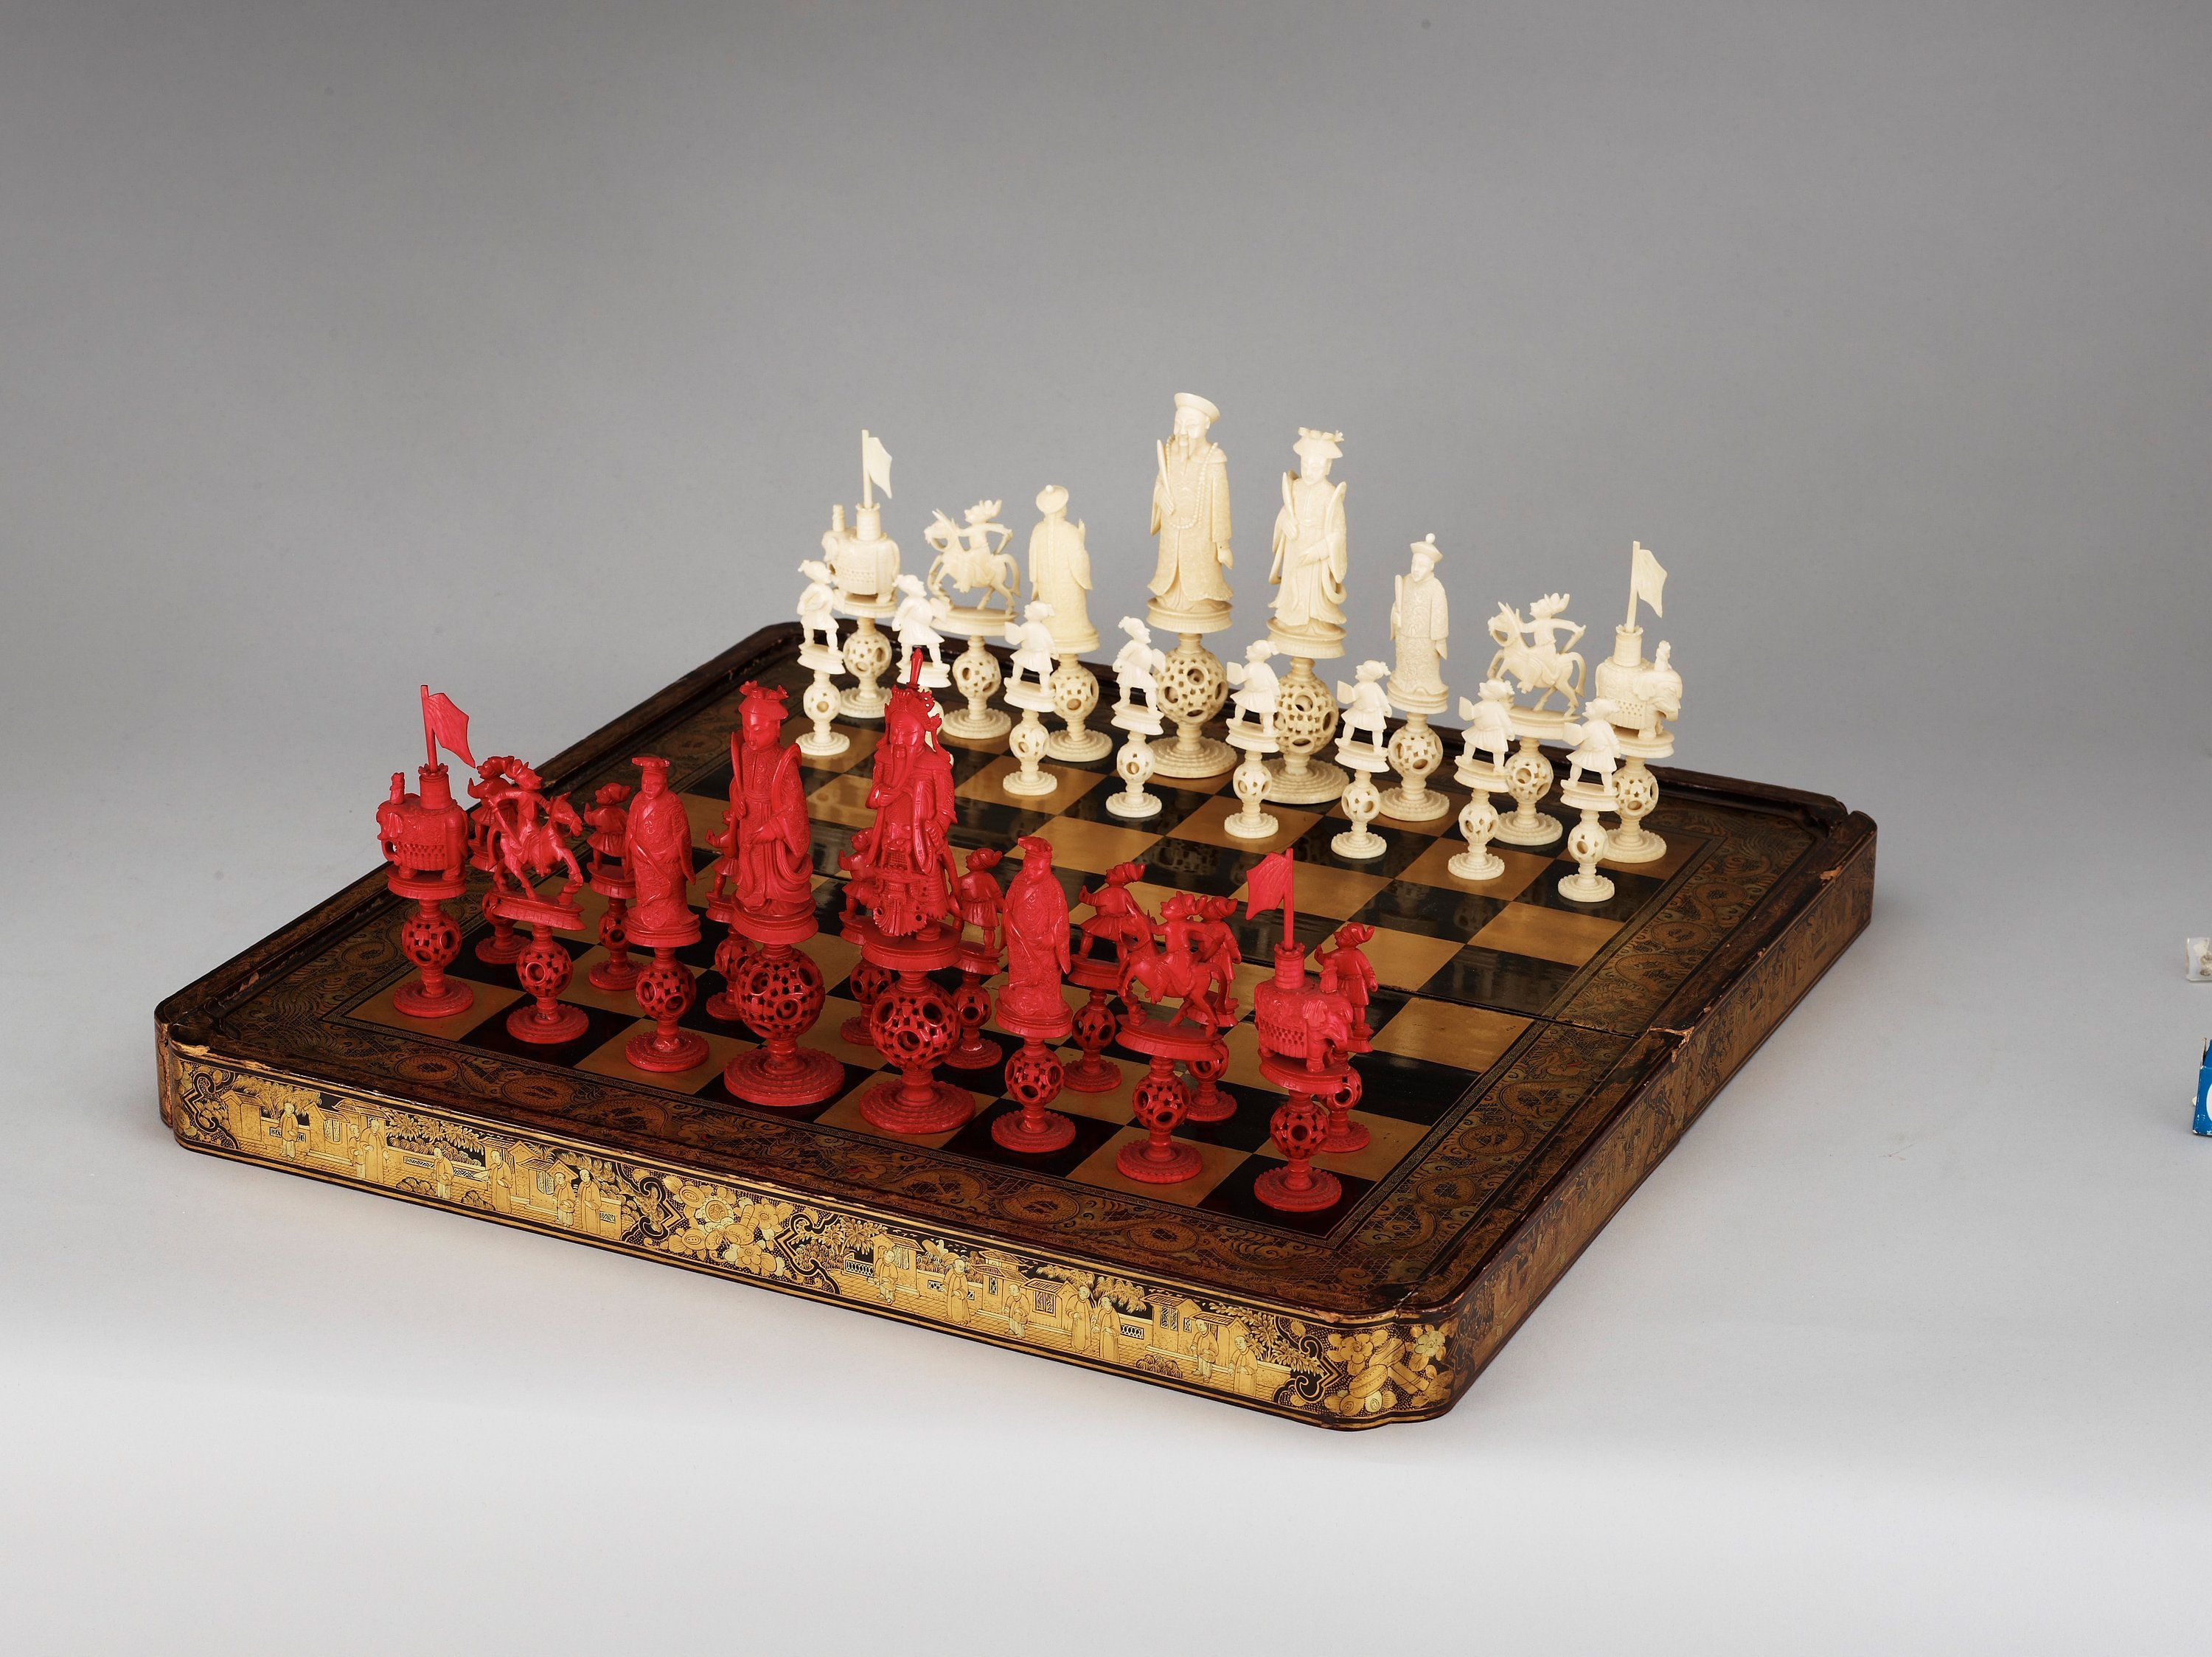 An large lacquered Games Box with ivory and bone Chess Pieces, Qing dynasty. With a hinged lid opening to reveal a bakgammon board, the chequered exterior forming a chess board with alternate squares of gold and black. Comprising 32 pieces carved as members of the chinese court.